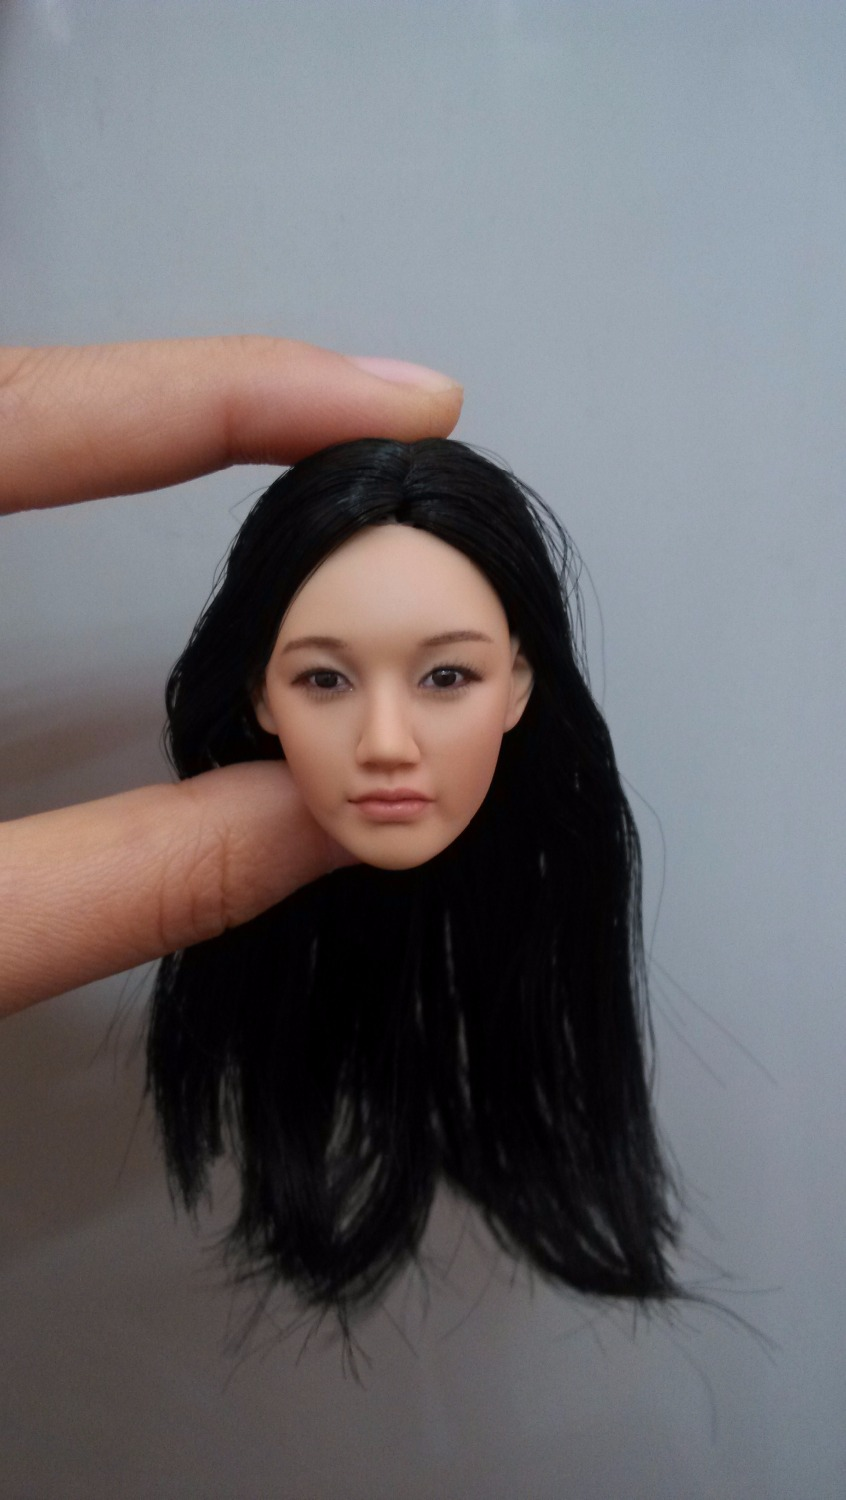 1/6  Headplay Figure Head Model Female Head Sculpt KM-38 NP Black Hair 12 Action Figure Collection Doll Toys Gift 1 6 popular km 38 female head sculpt model with black hair for 12 female action figure body doll toys